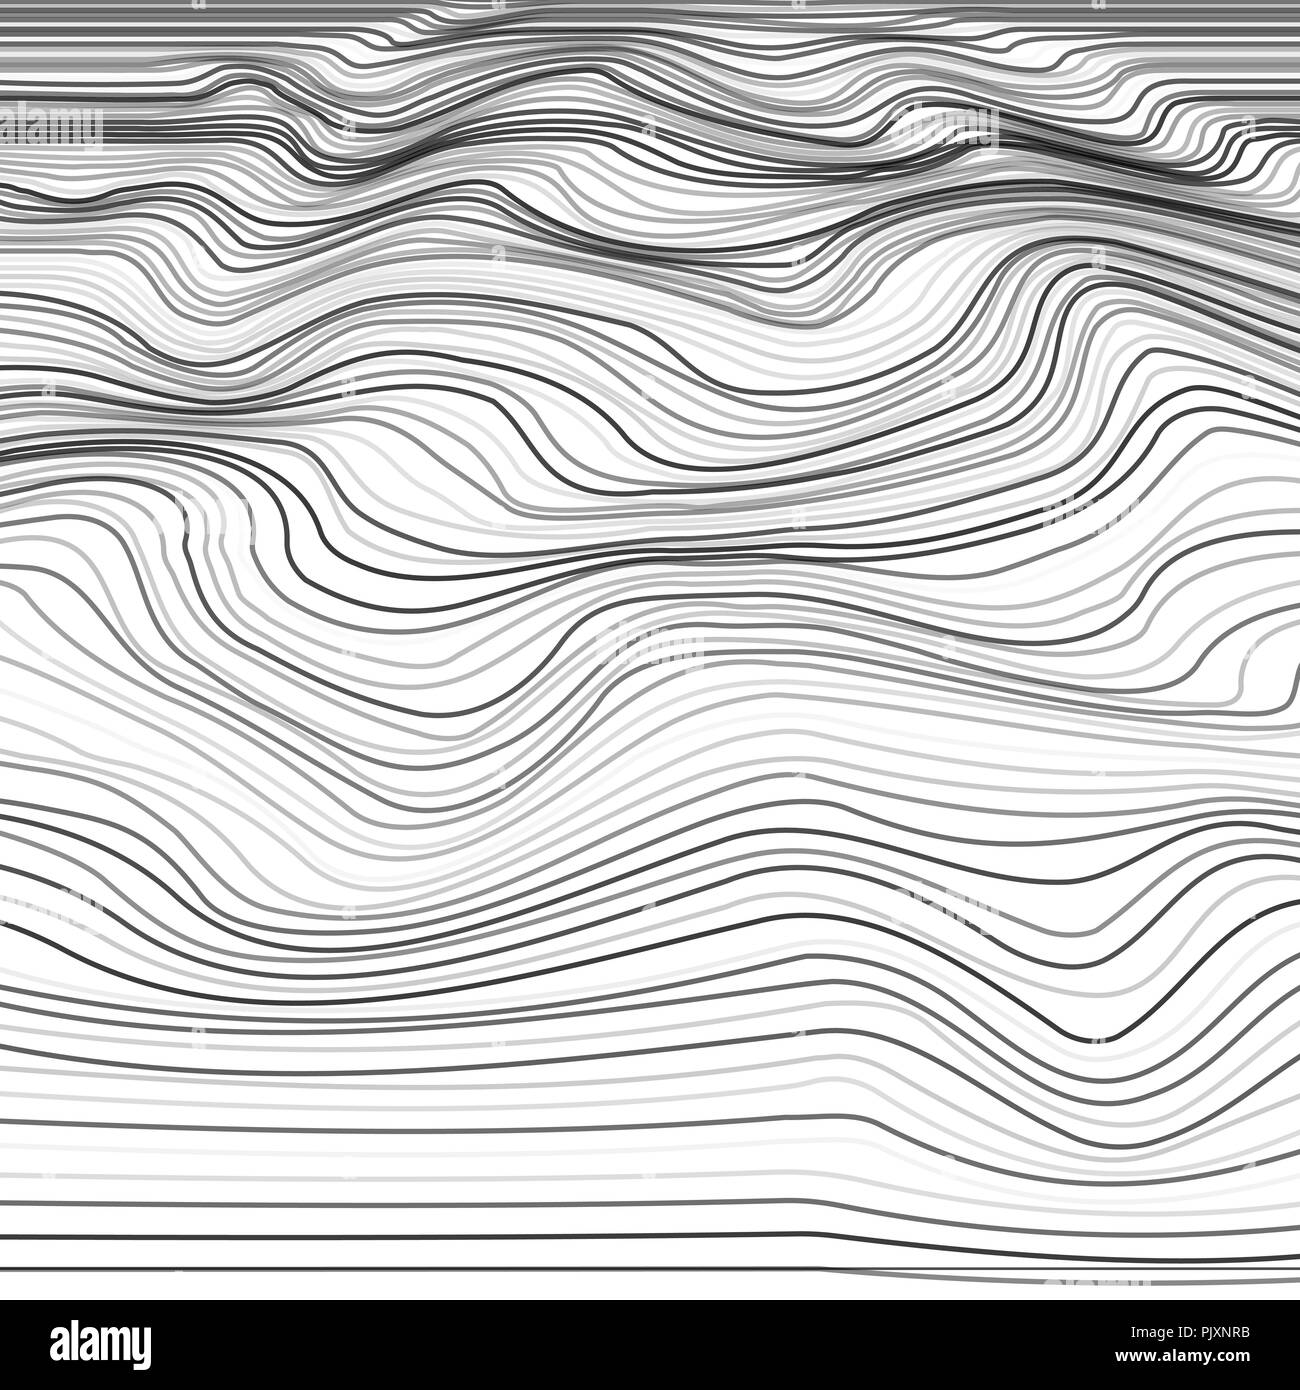 Stripe deformation background. Distorted wave monochrome texture. Abstract dynamical rippled surface from line. Vector illustration - Stock Image